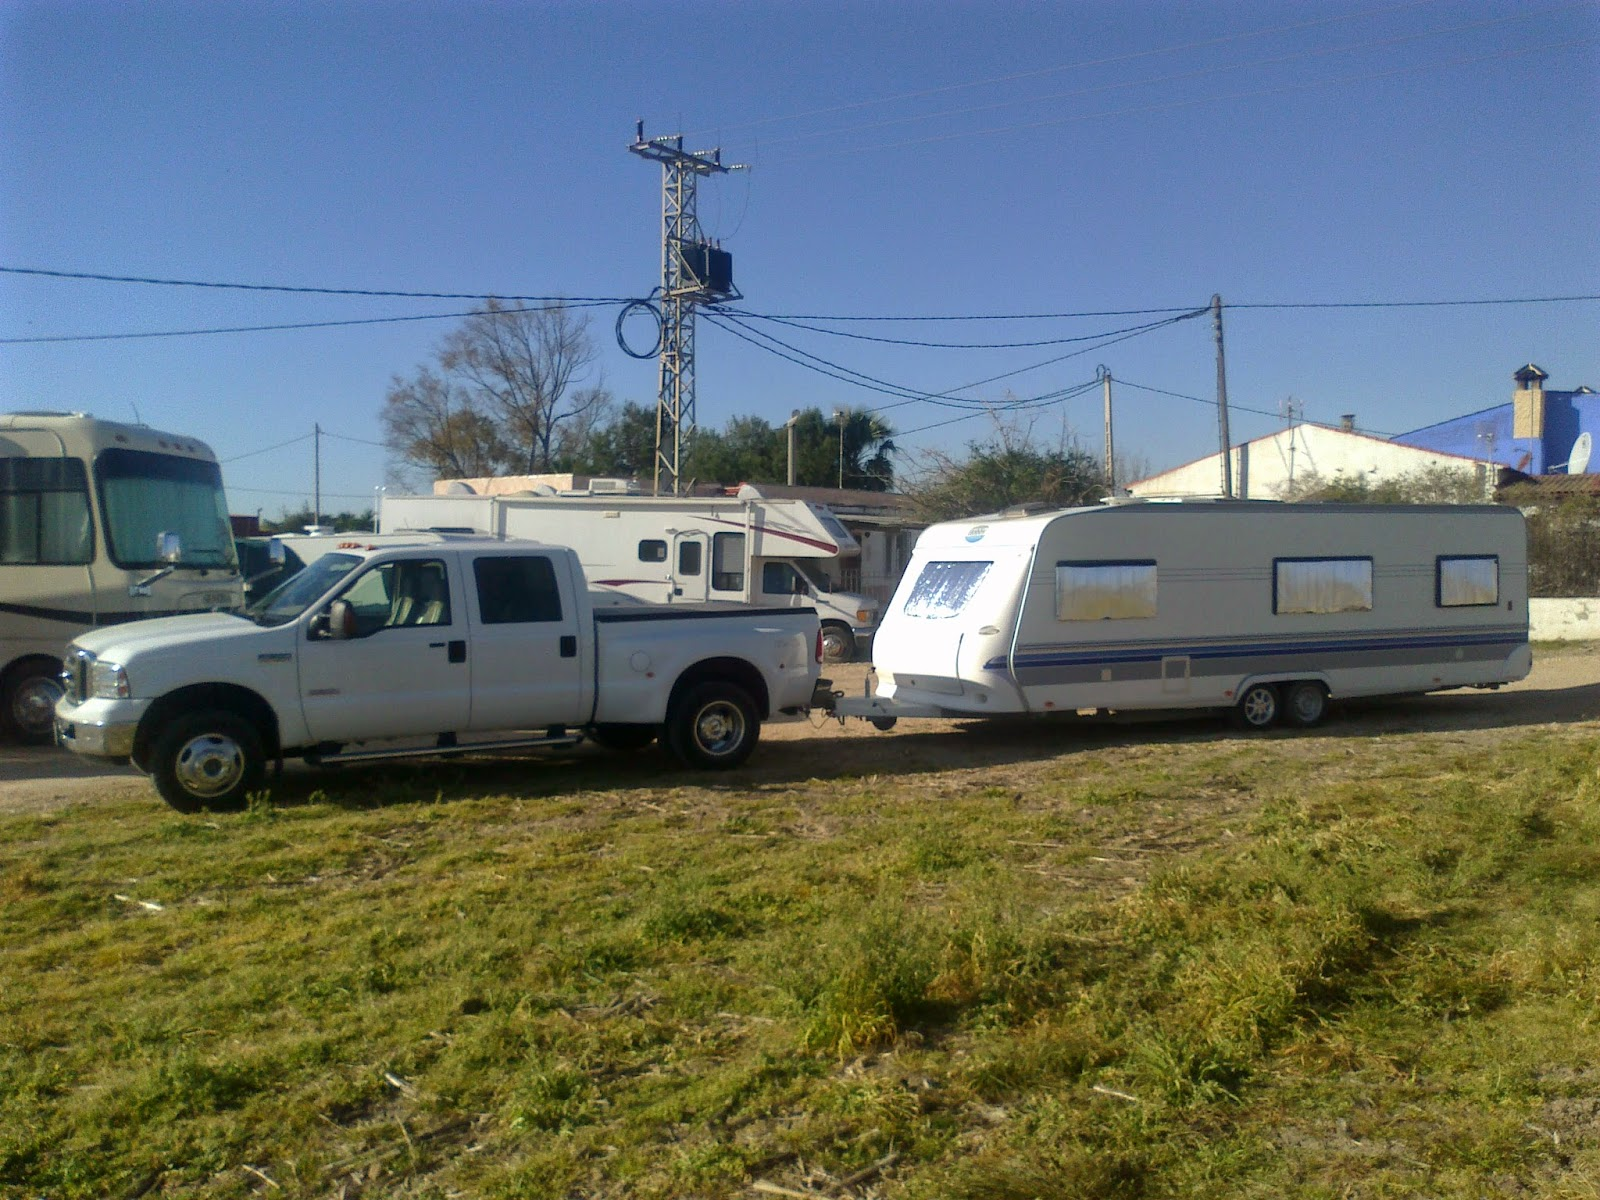 Caravan, boat, trailer towing service, Costa Blanca, Spain